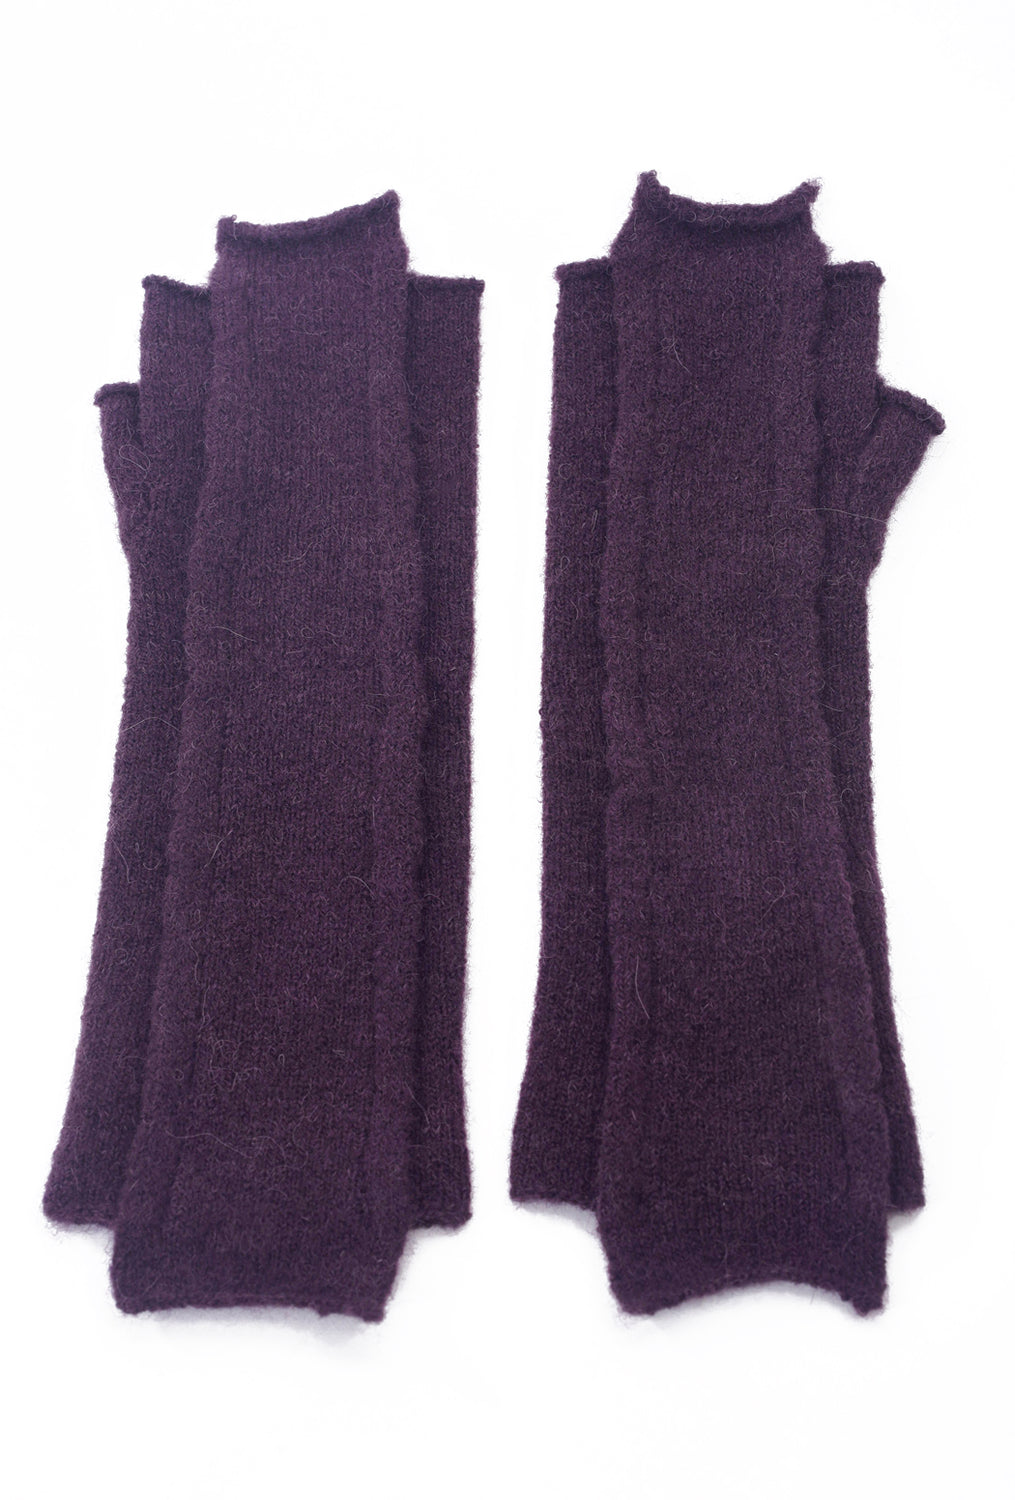 Rundholz Black Label Cozy Overlap Arm Warmers, Merlot